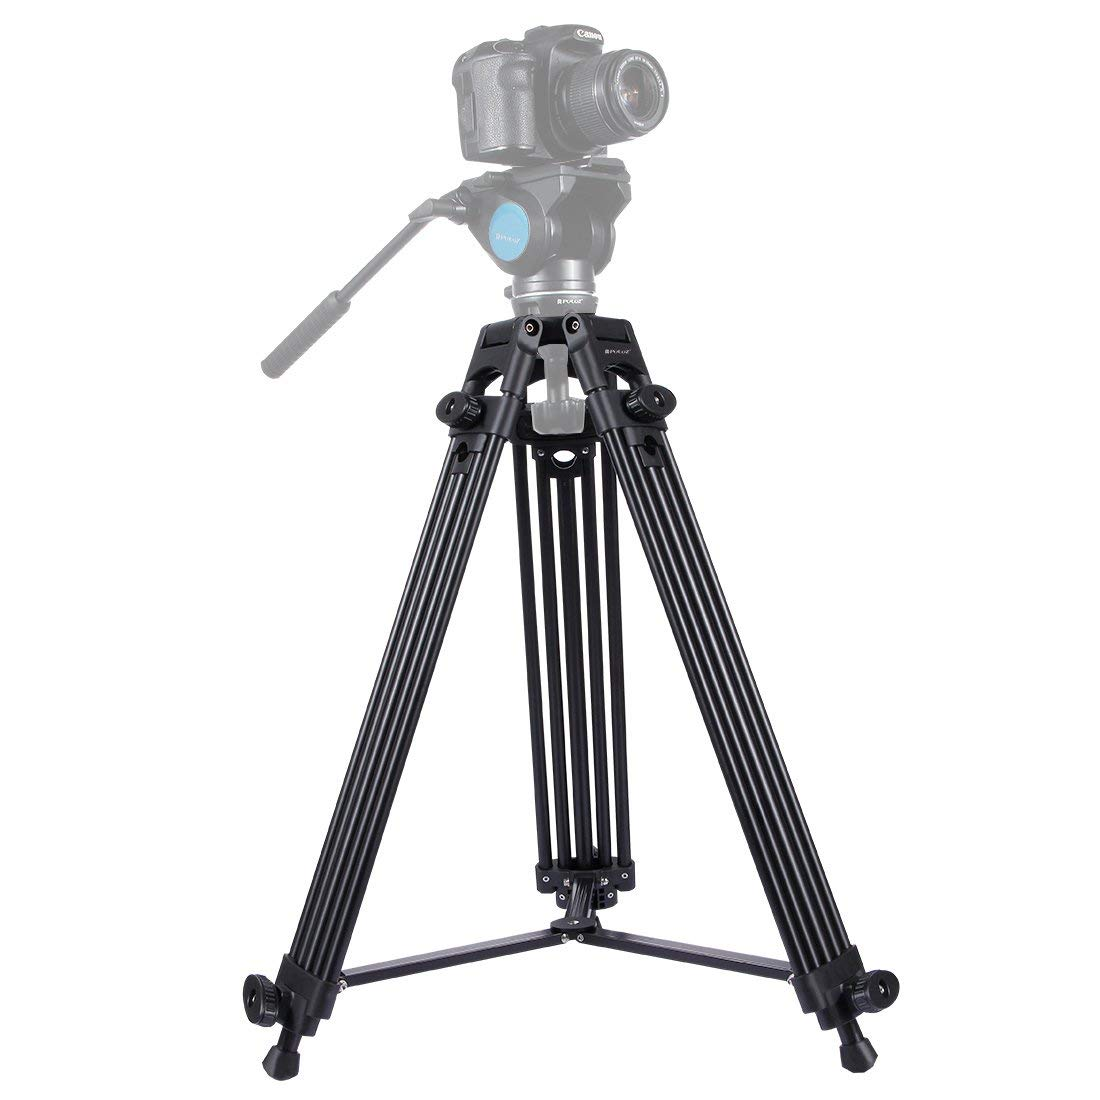 Camera Tripod Professional Universal Heavy Duty Adjustable Aluminum Alloy Tripod Legs for DSLR Digital Cameras & Camcorders